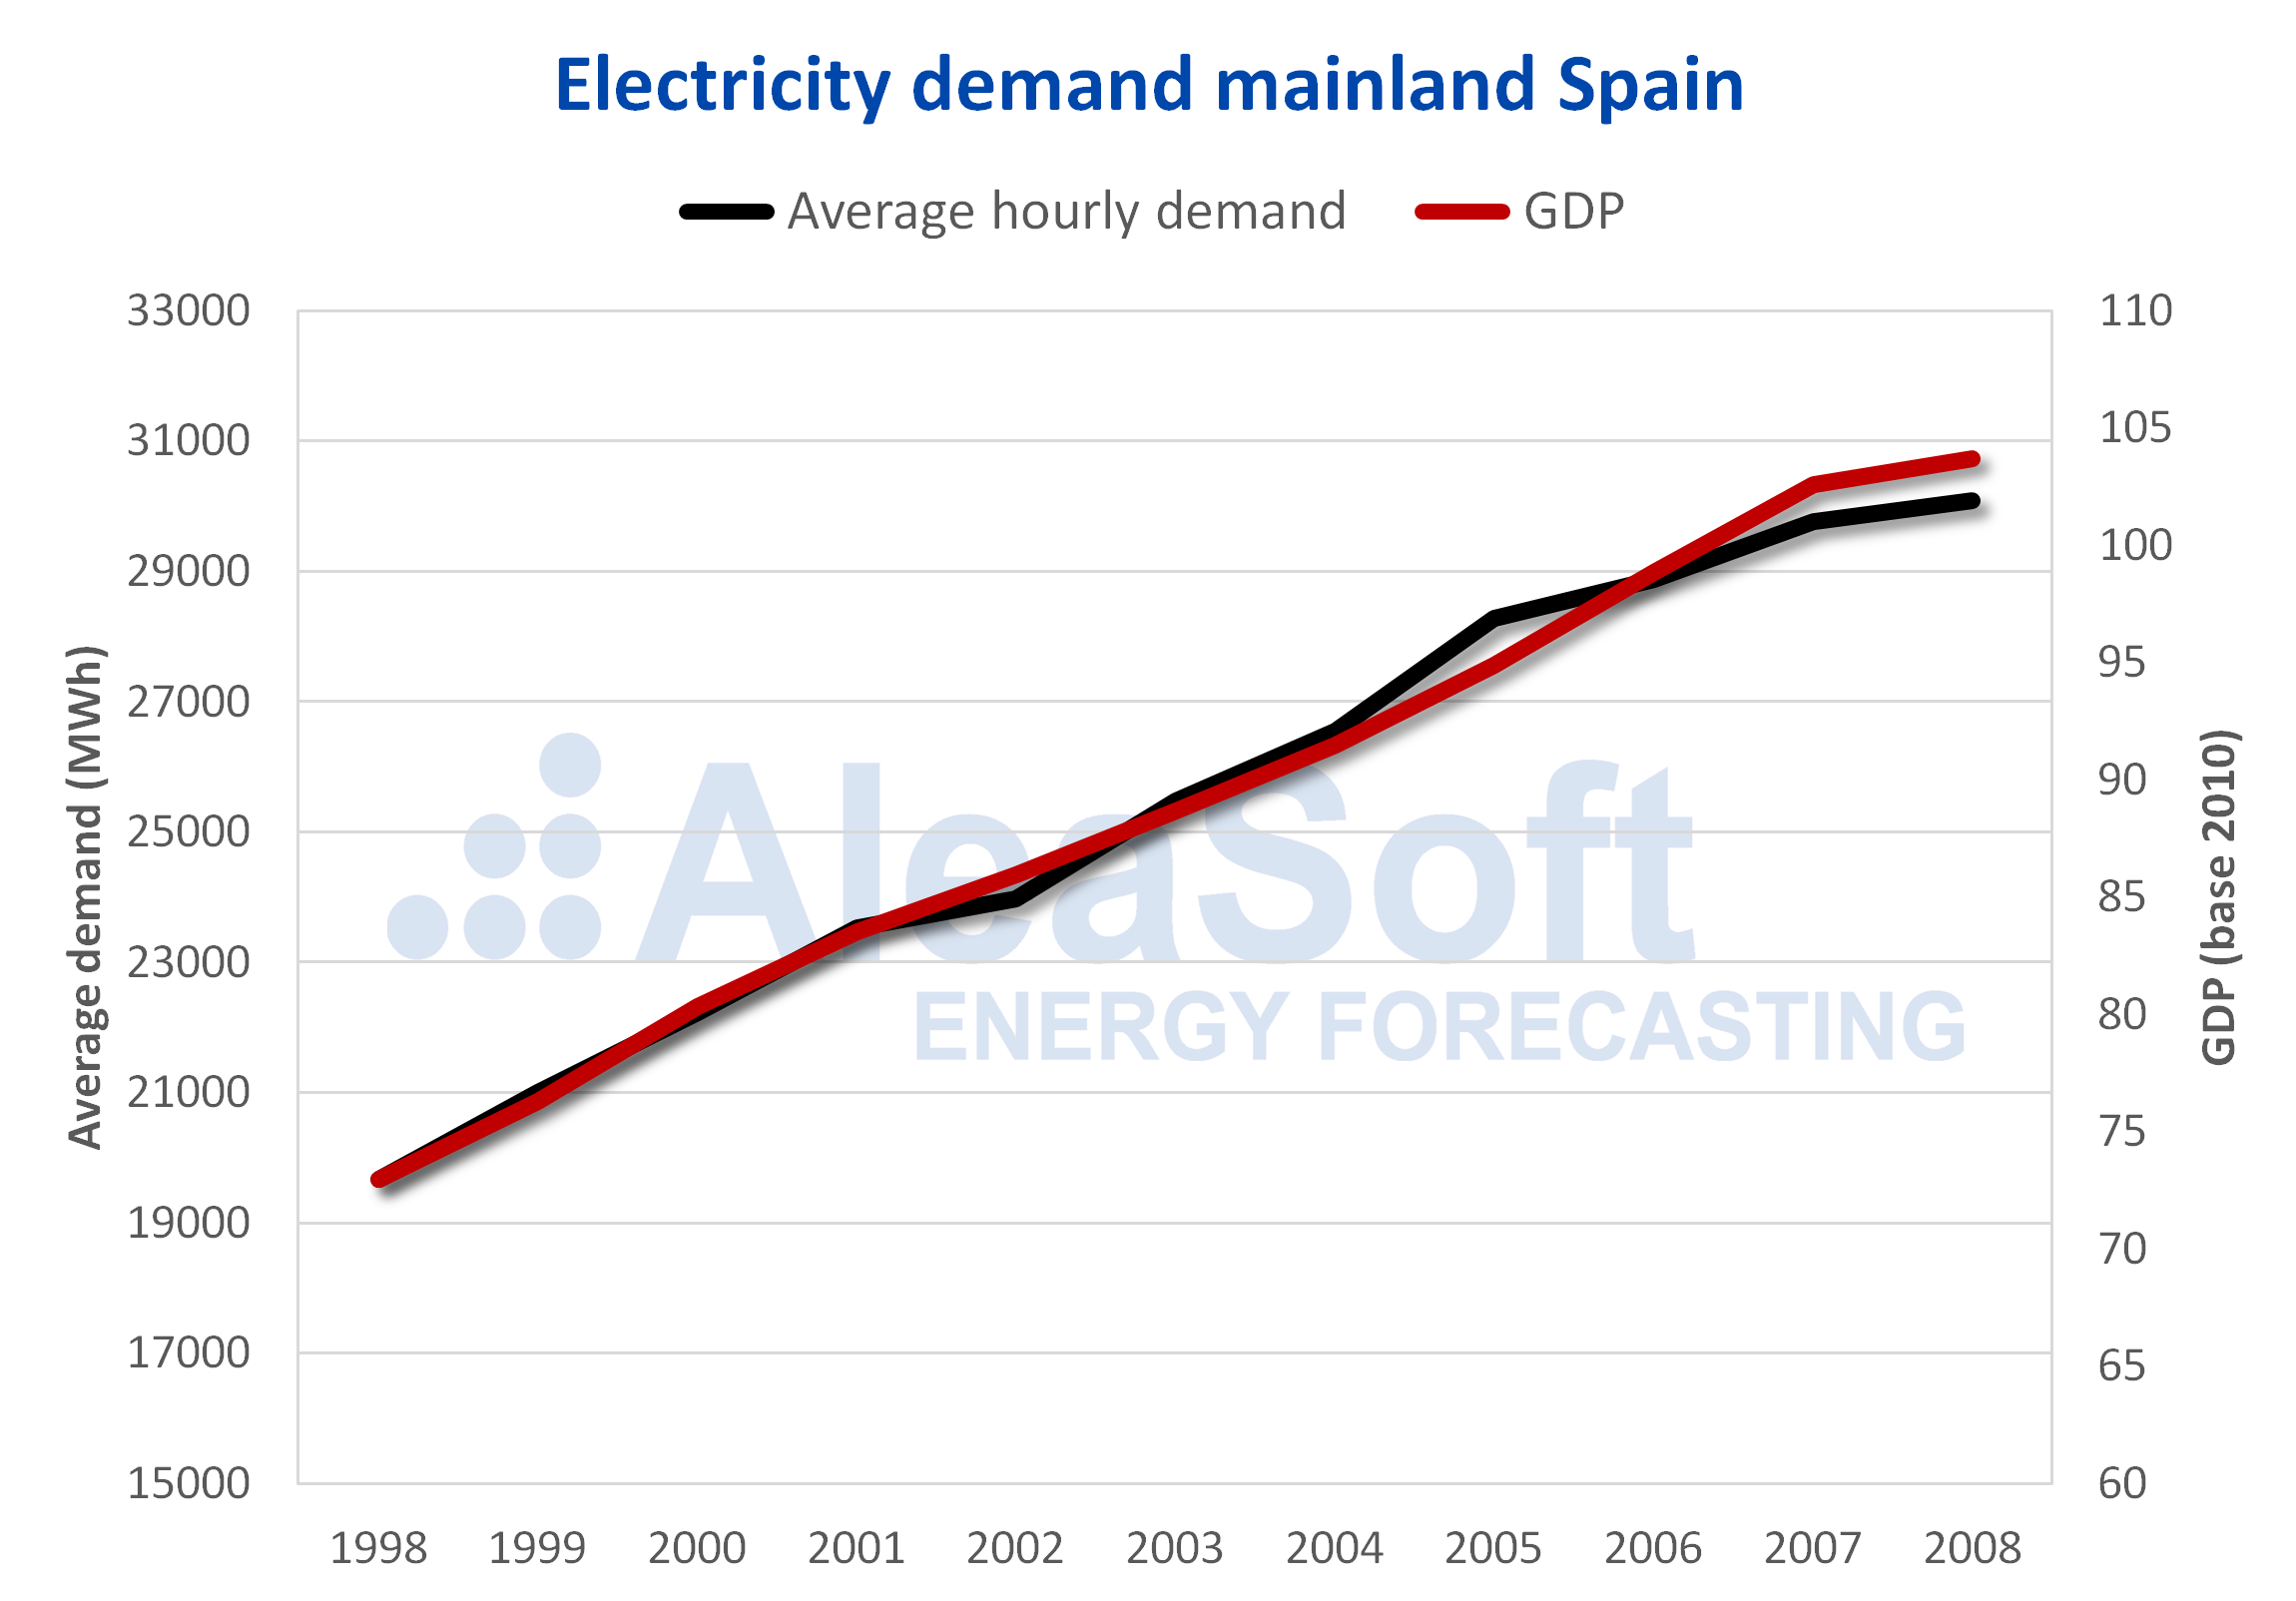 AleaSoft - Electricity demand GDP Spain 1998-2008